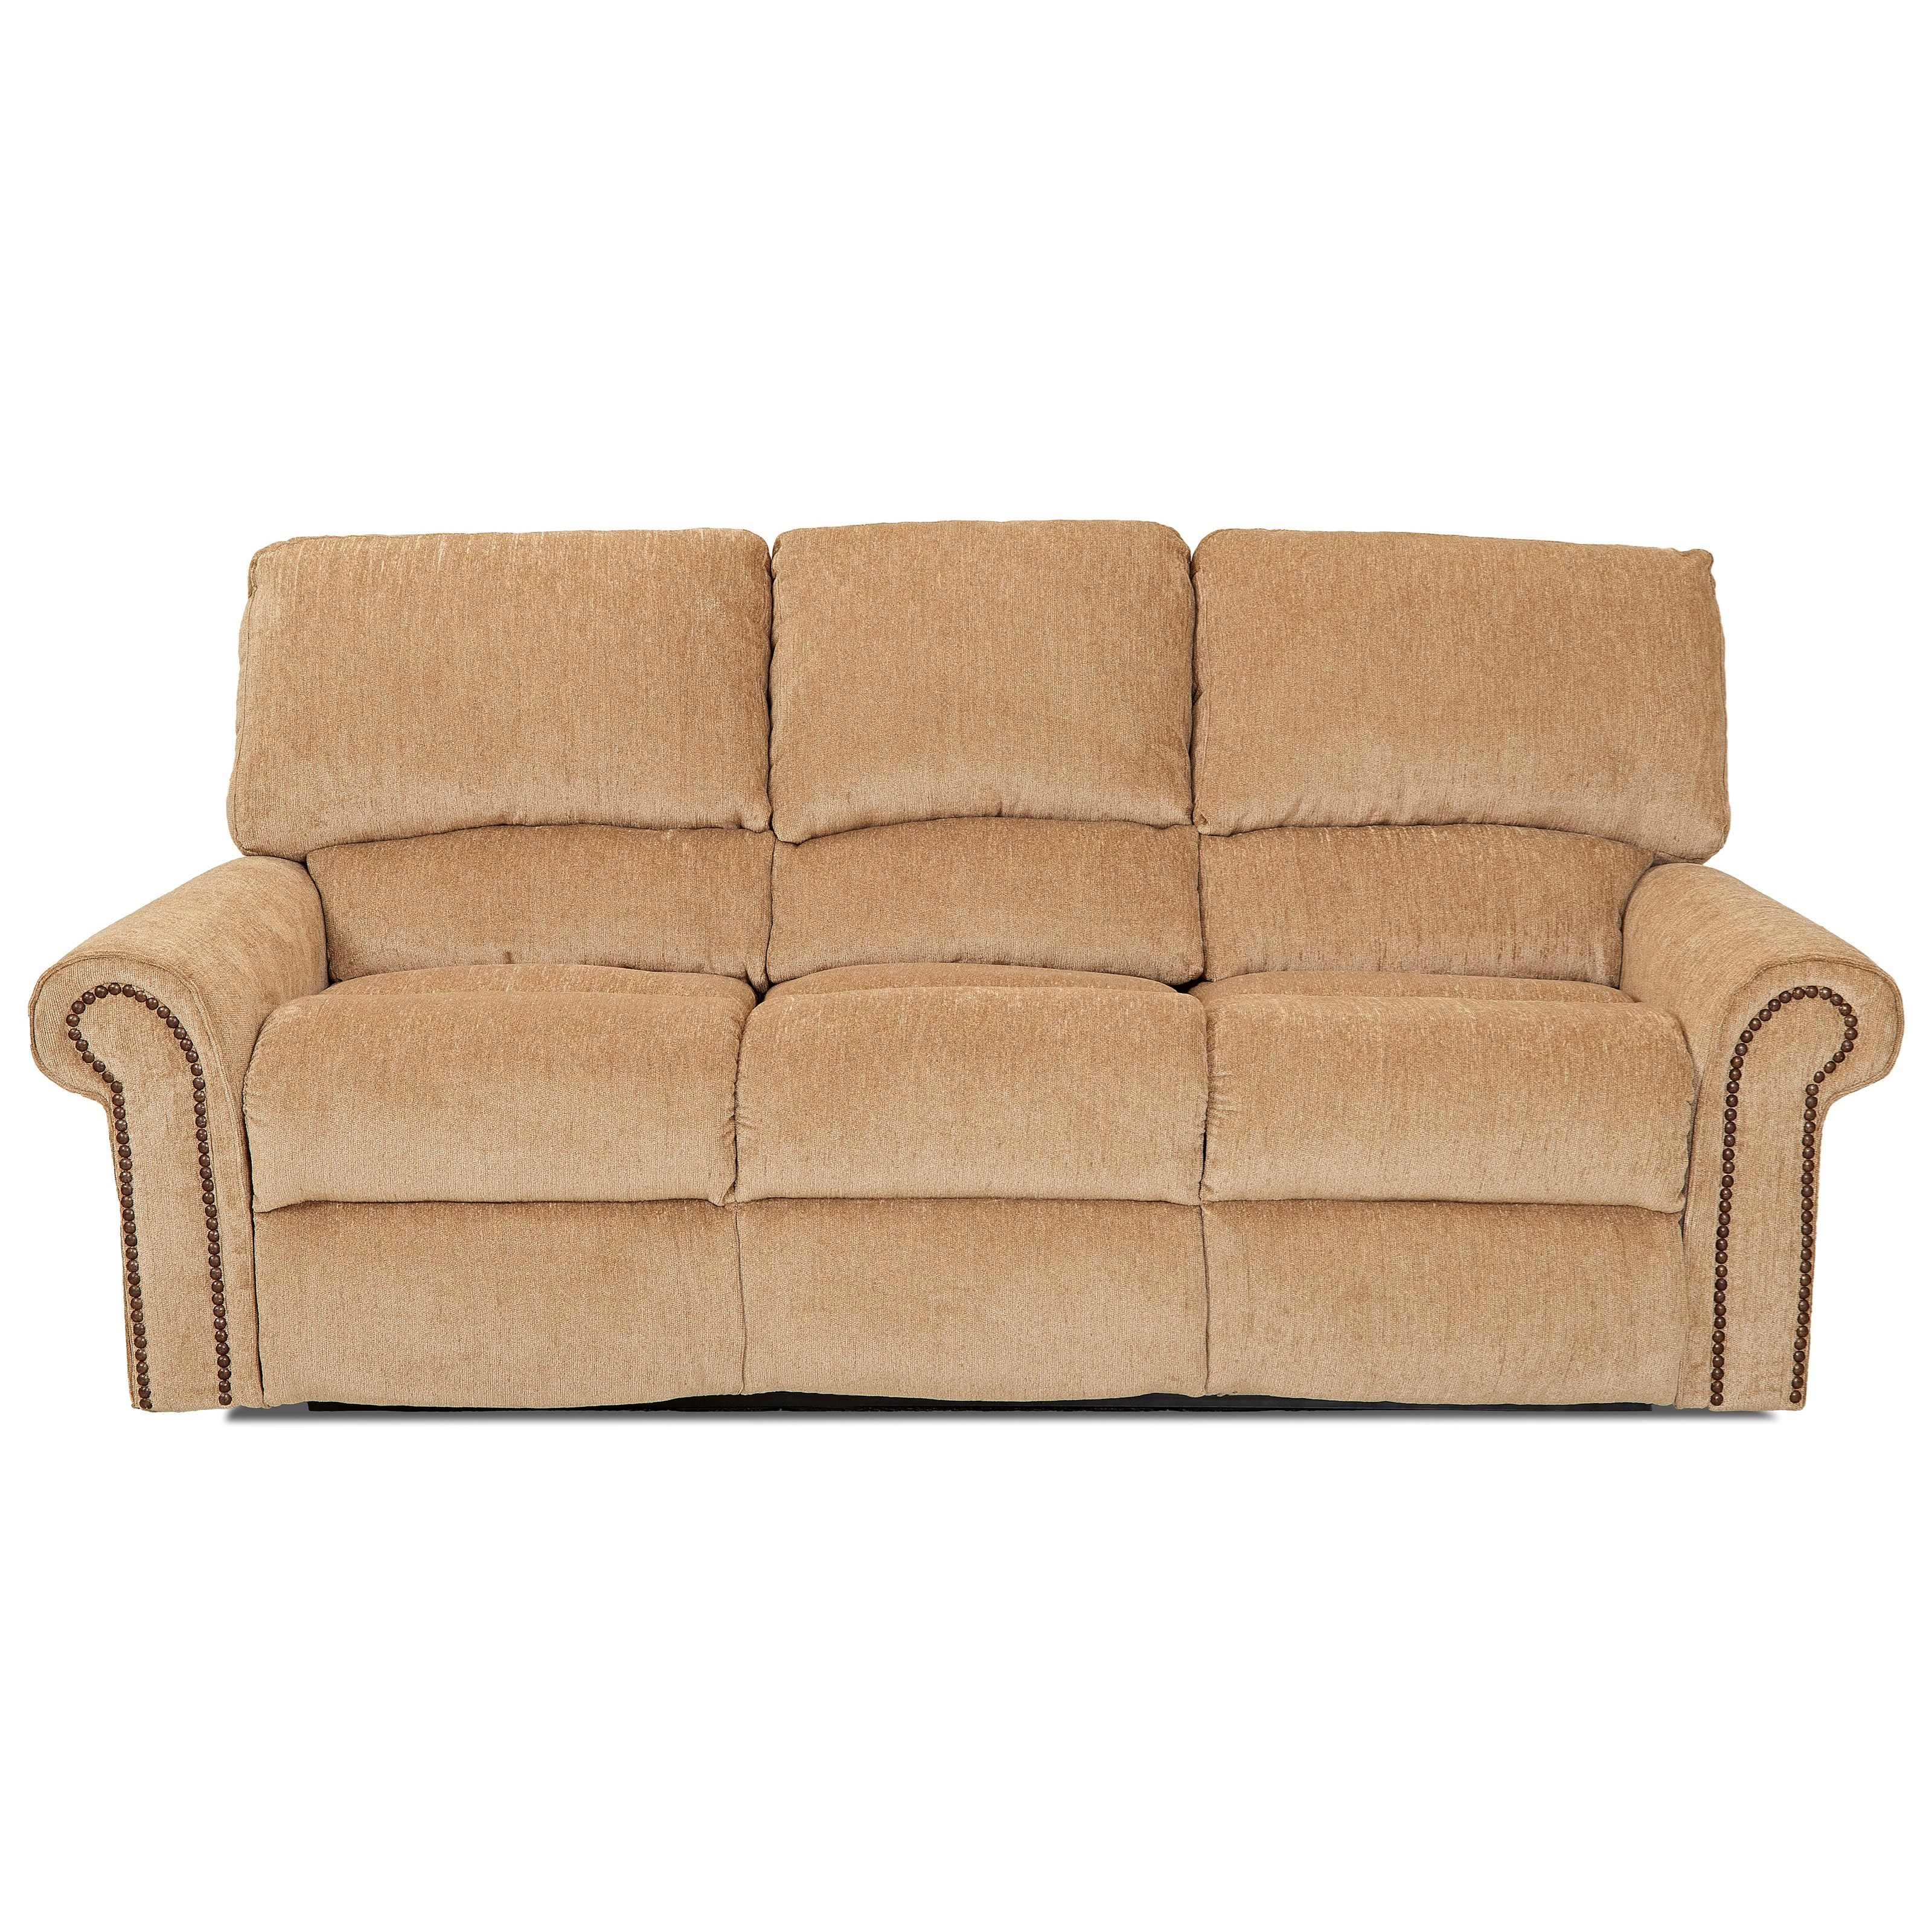 Klaussner Savannah Reclining Sofa With Rolled Arms And